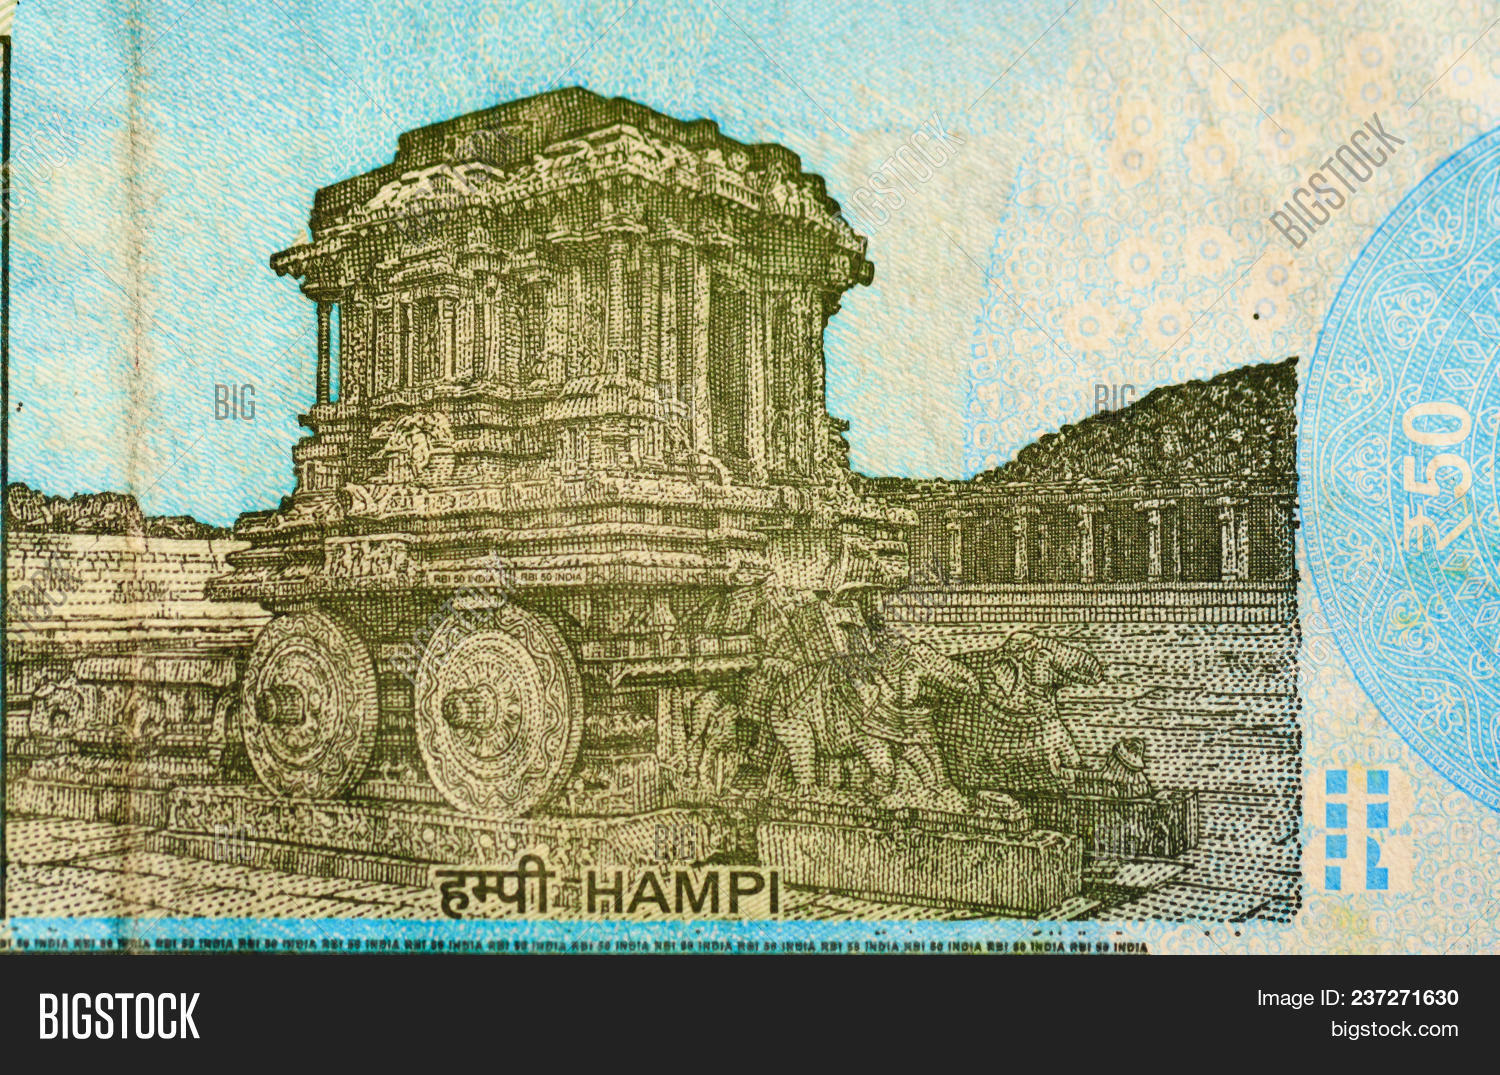 Indian 50 Rupees Note Image & Photo (Free Trial) | Bigstock